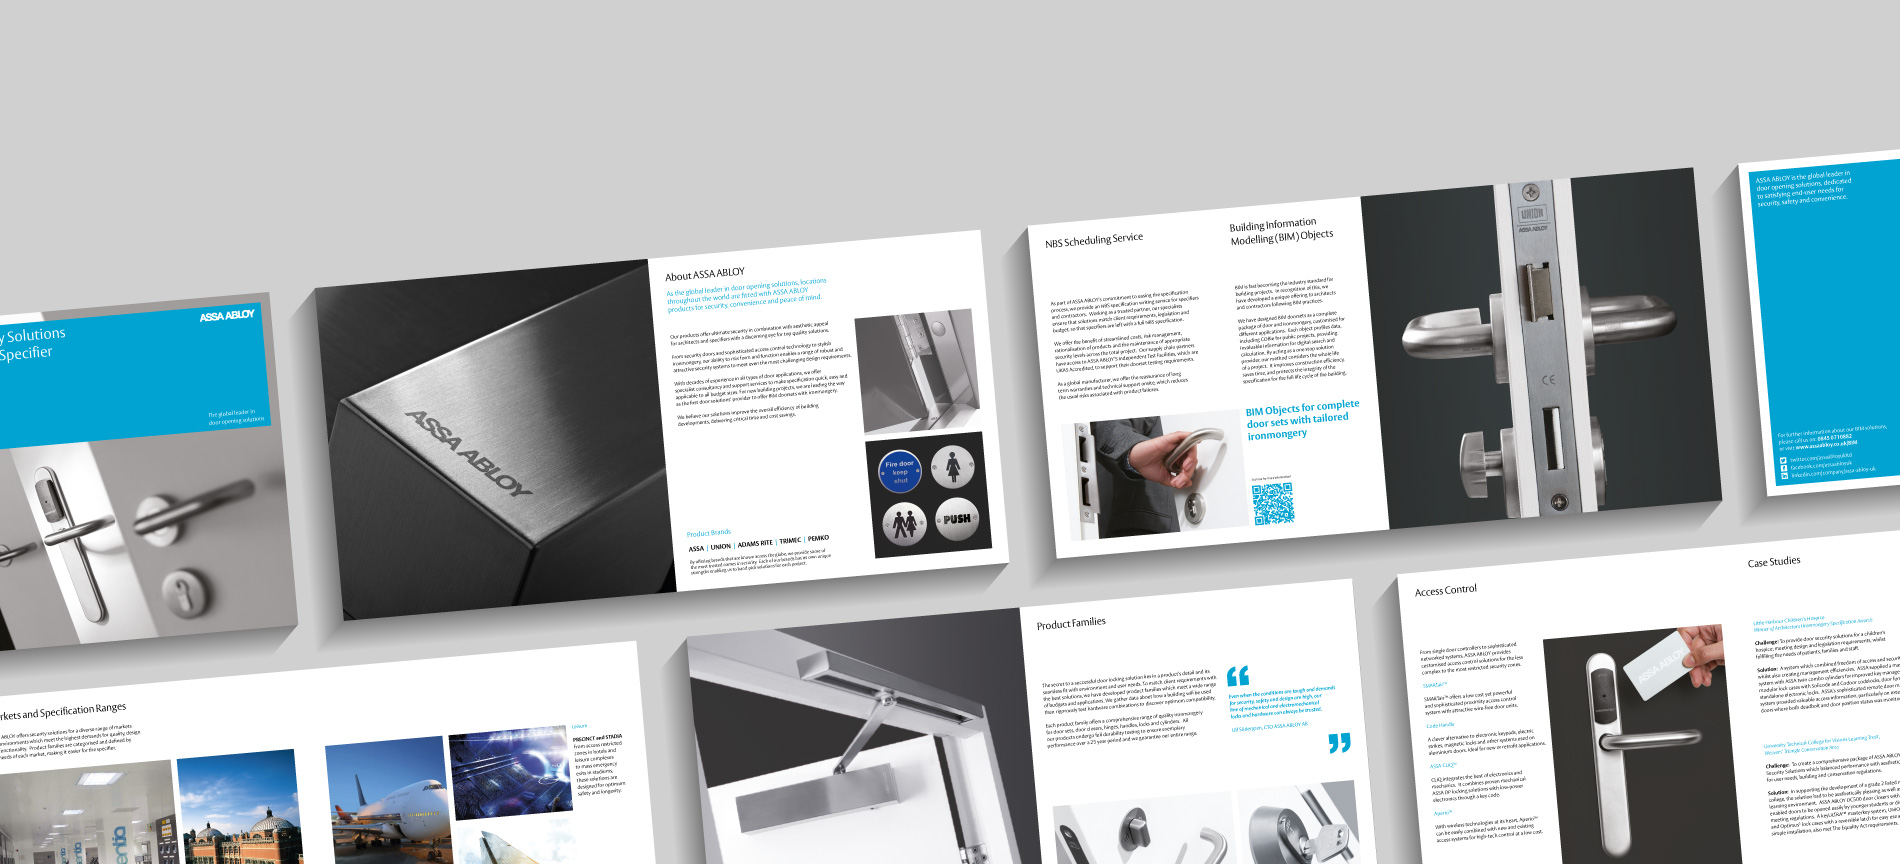 ASSA ABLOY brochure spreads - desktop